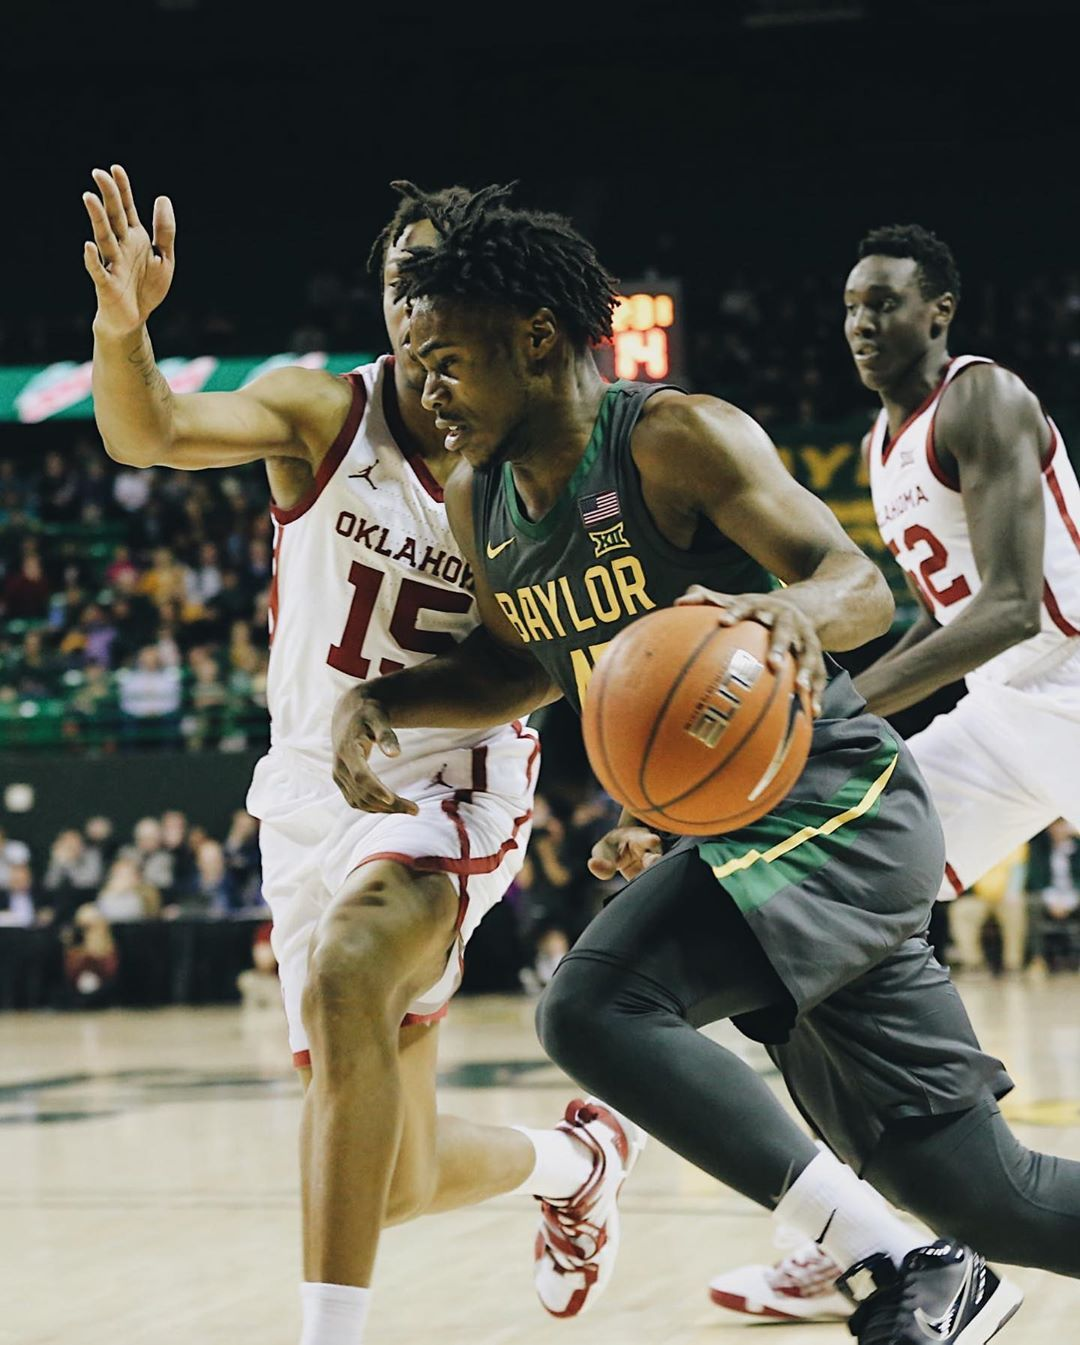 Currently the No. 1 Team in the Nation Baylor Basketball